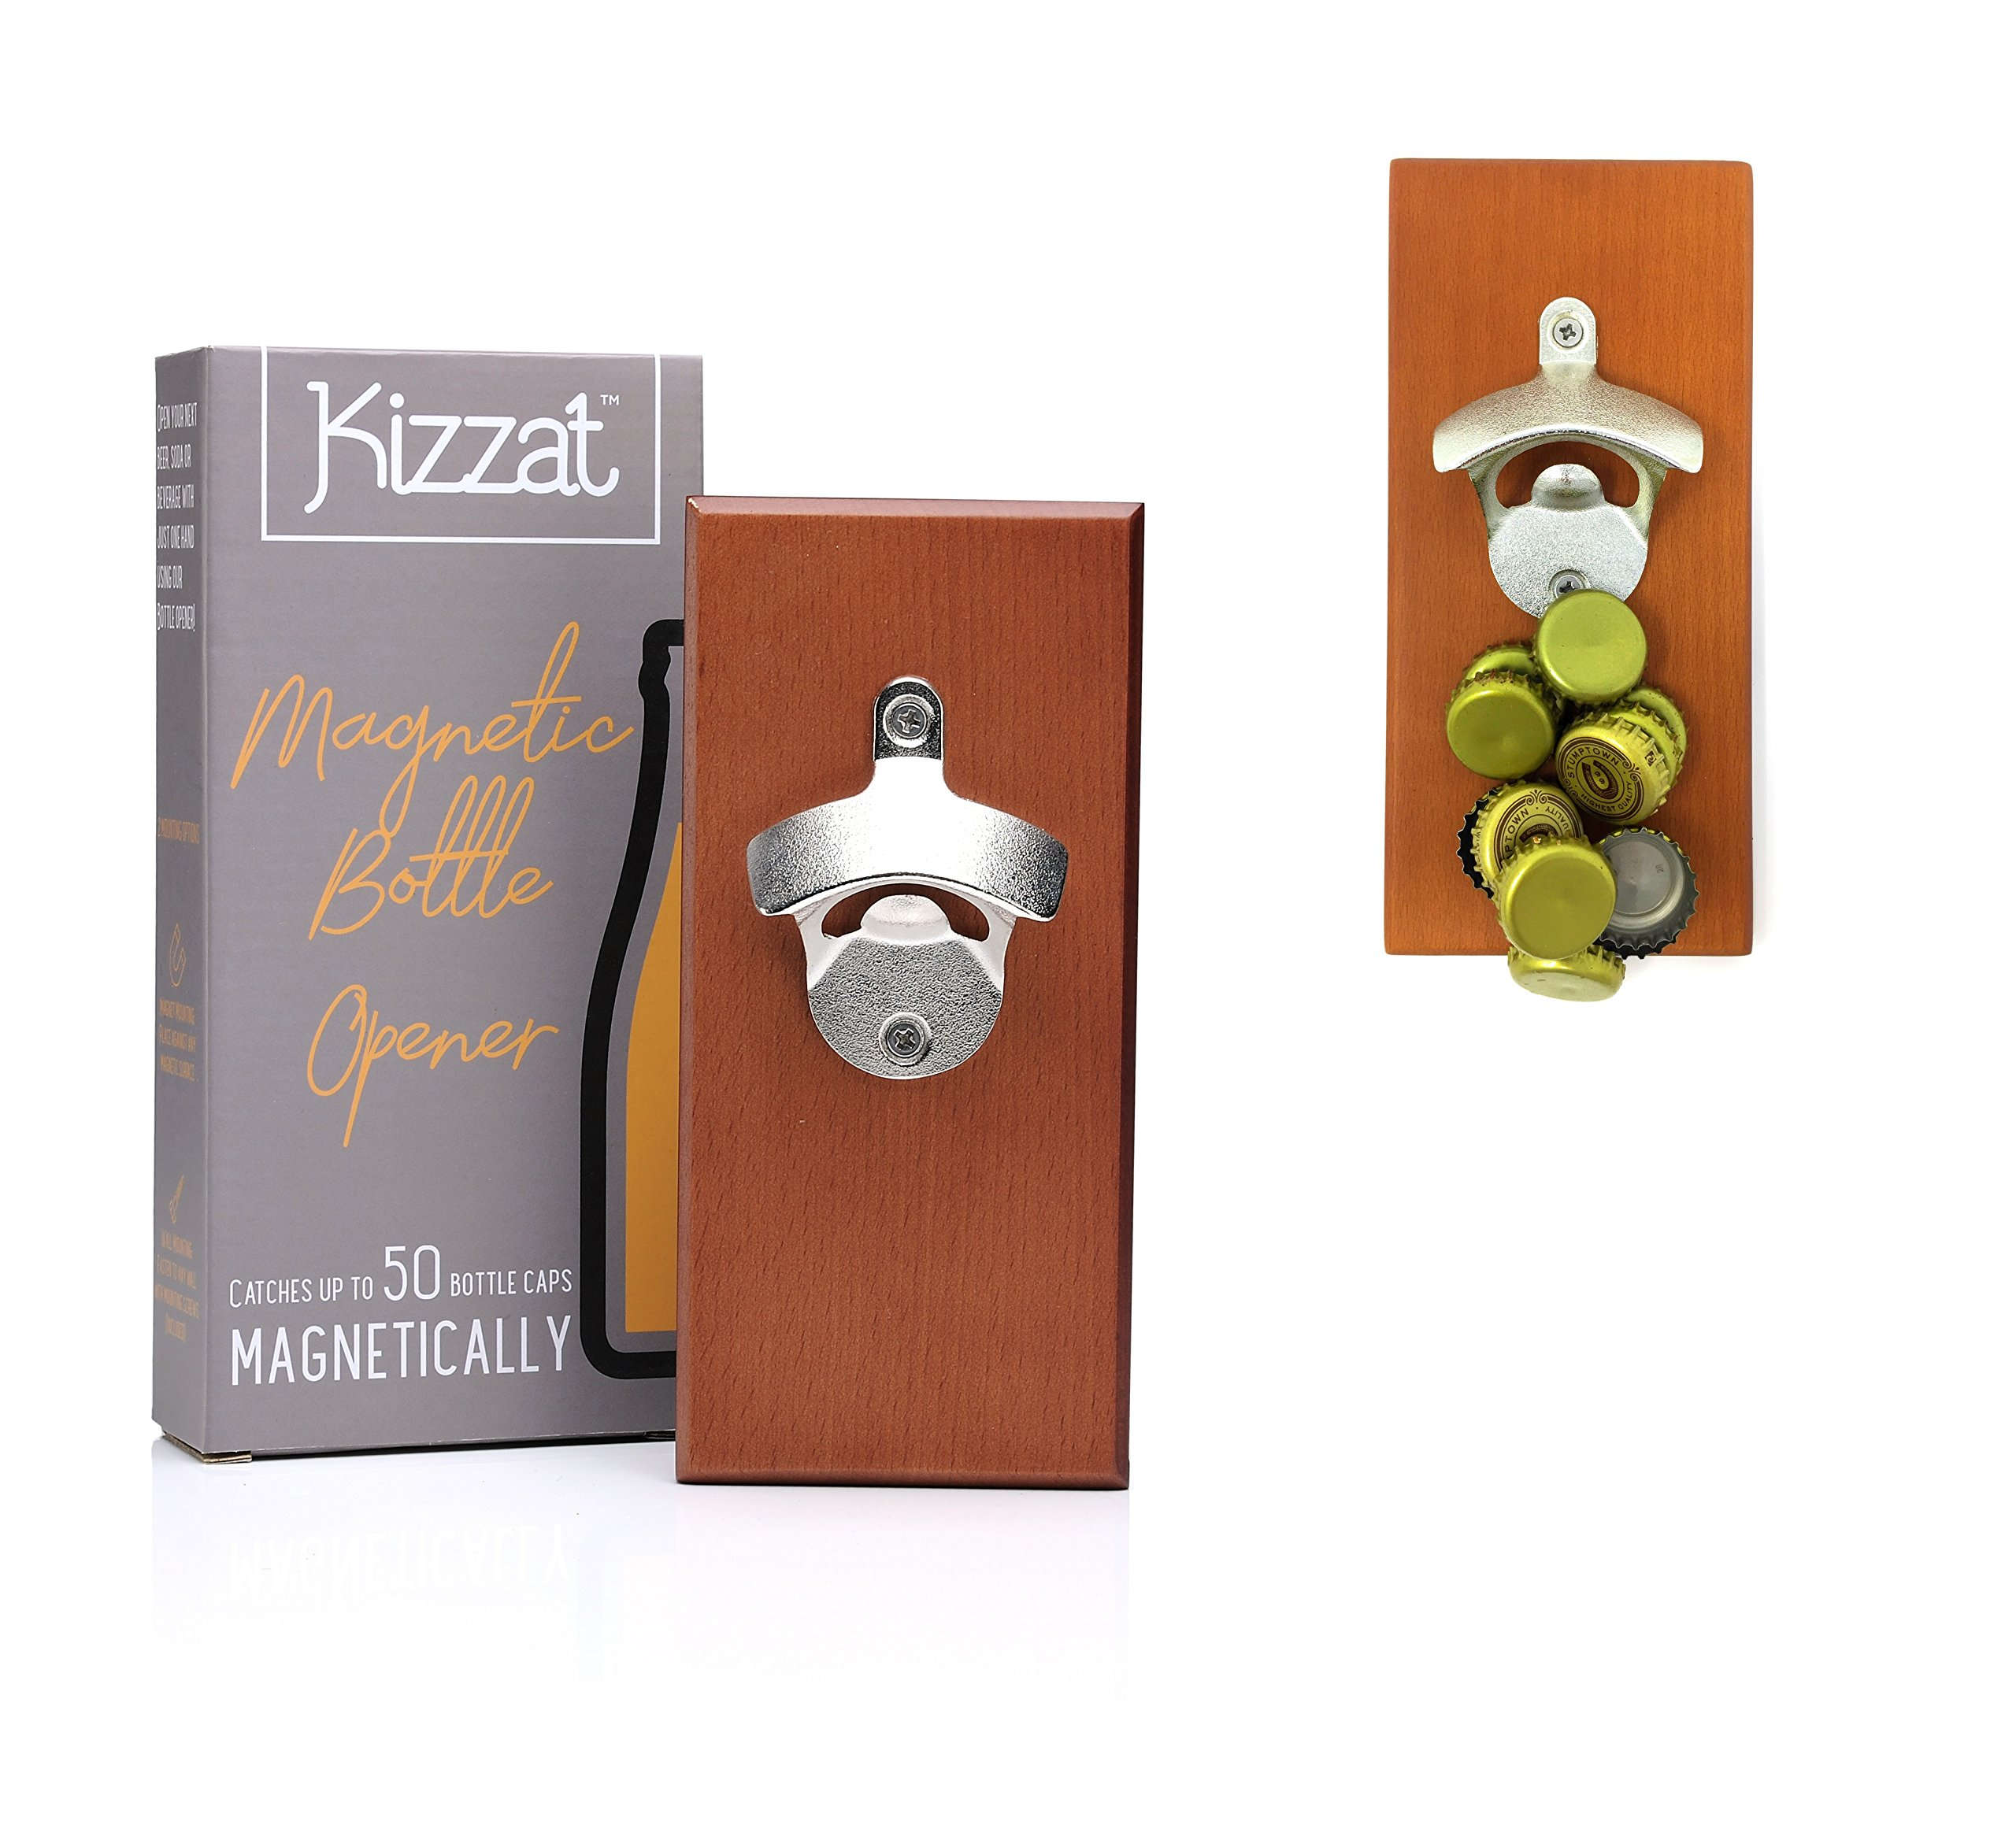 Wall Mounted Magnetic Bottle Opener and Cap Catcher with Hanging Kit, Made with Premium Beech Wood and Upgraded Stronger Magnets for Home Bar Kitchen or Man Cave